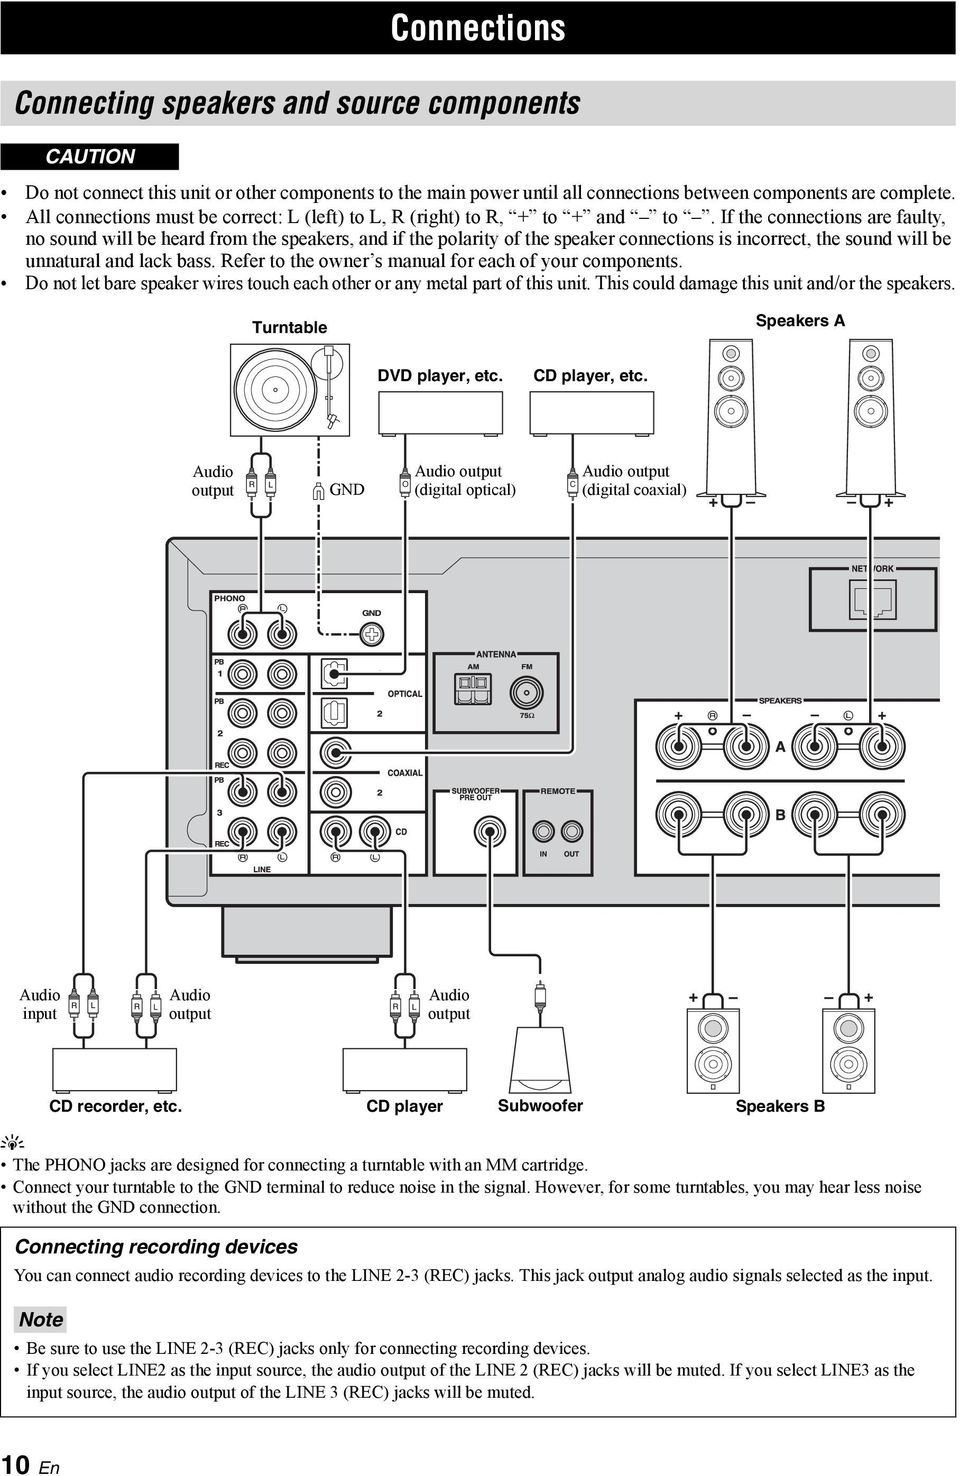 If the connections are fault, no sound will be heard from the speakers, and if the polarit of the speaker connections is incorrect, the sound will be unnatural and lack bass.